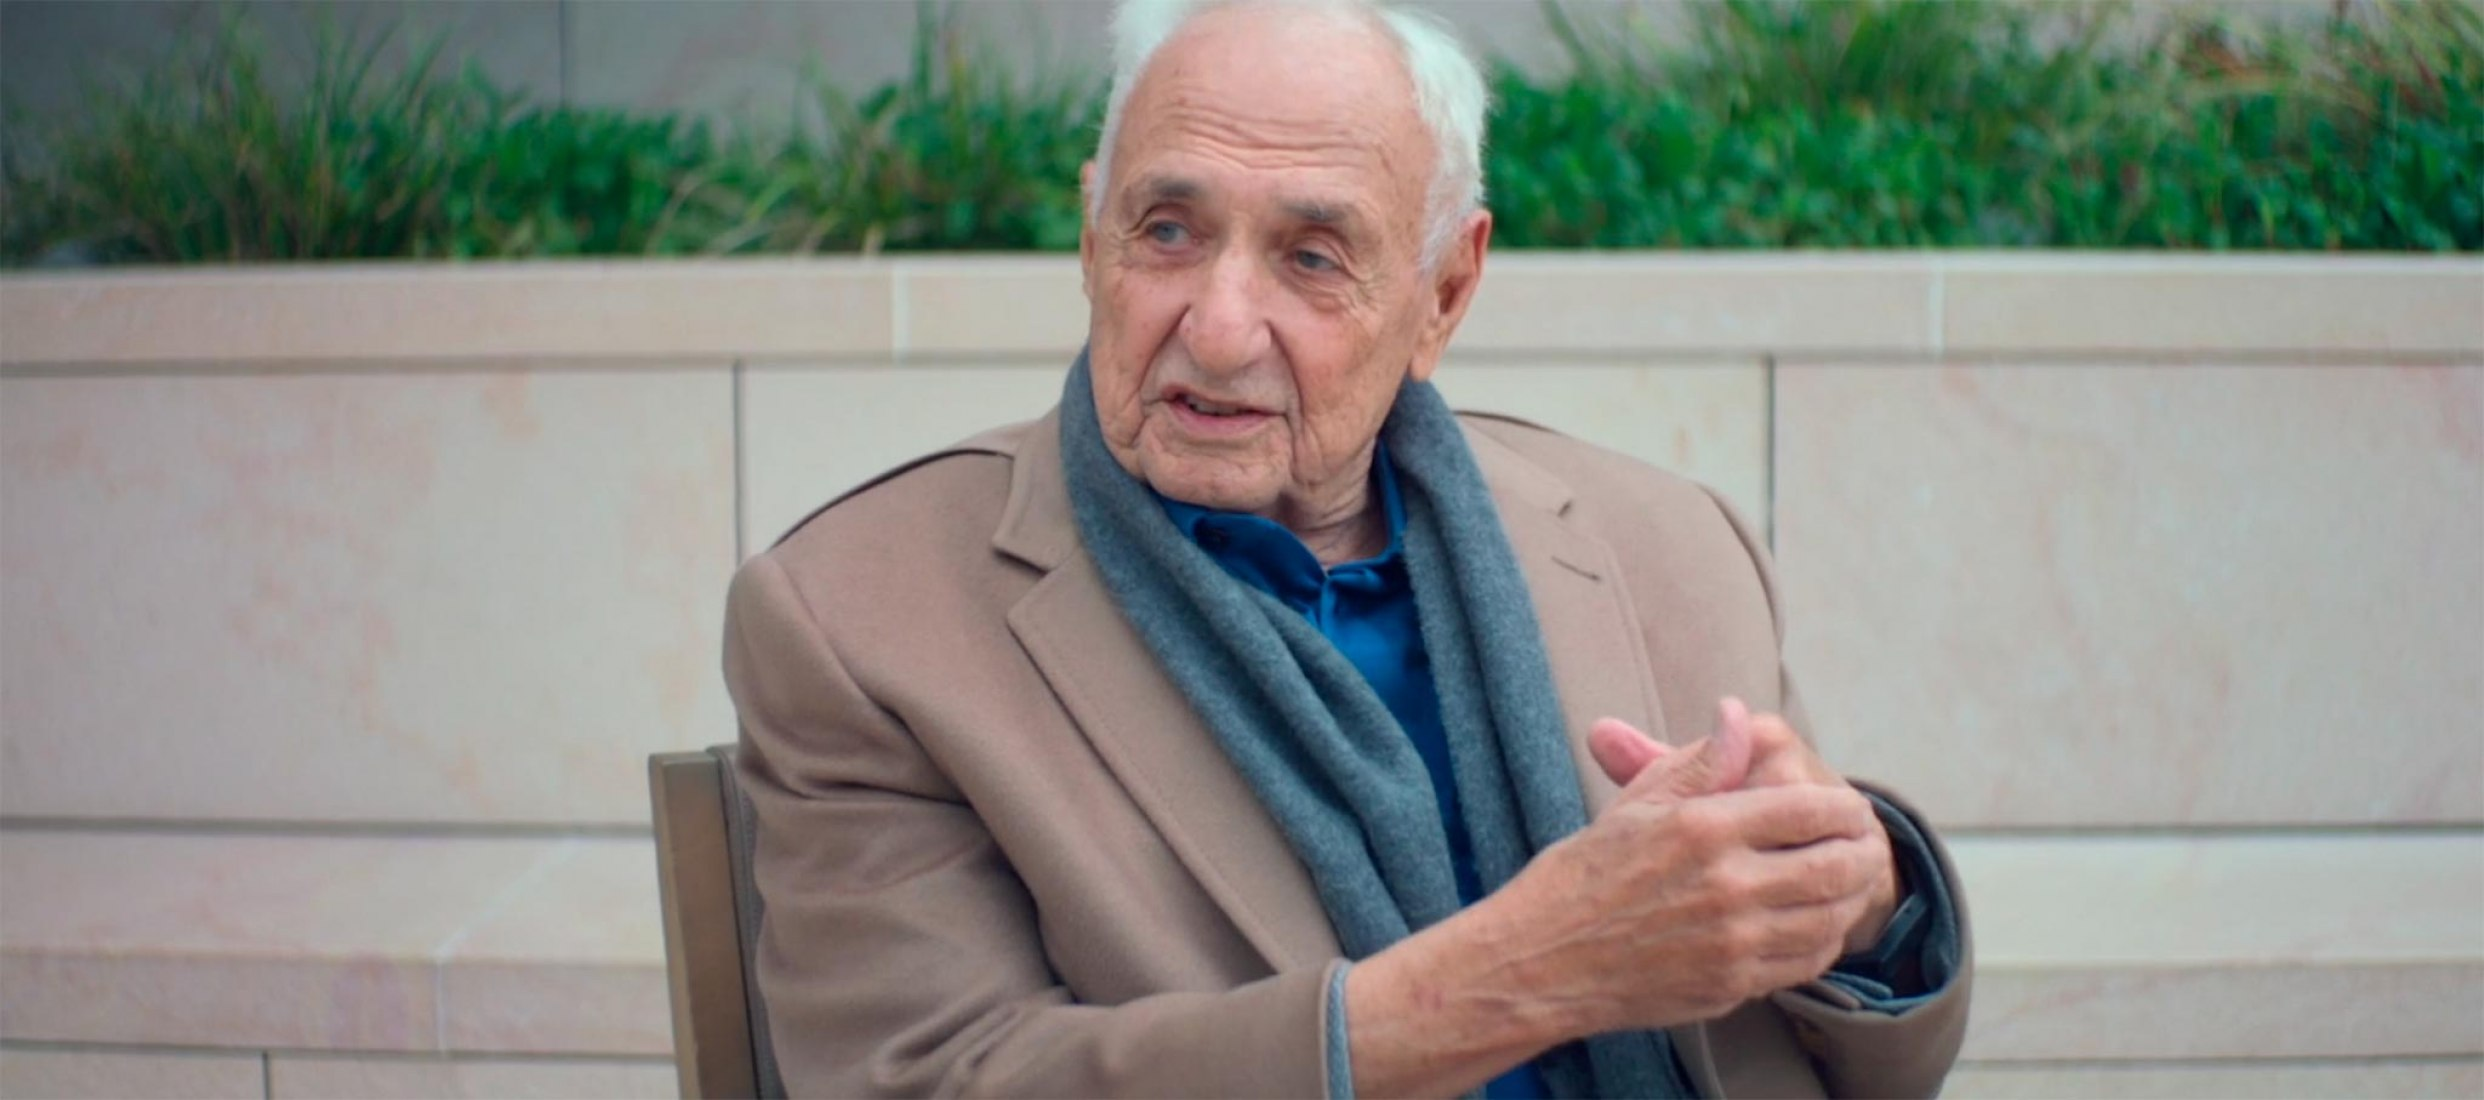 FRANK GEHRY. Creating Feeling